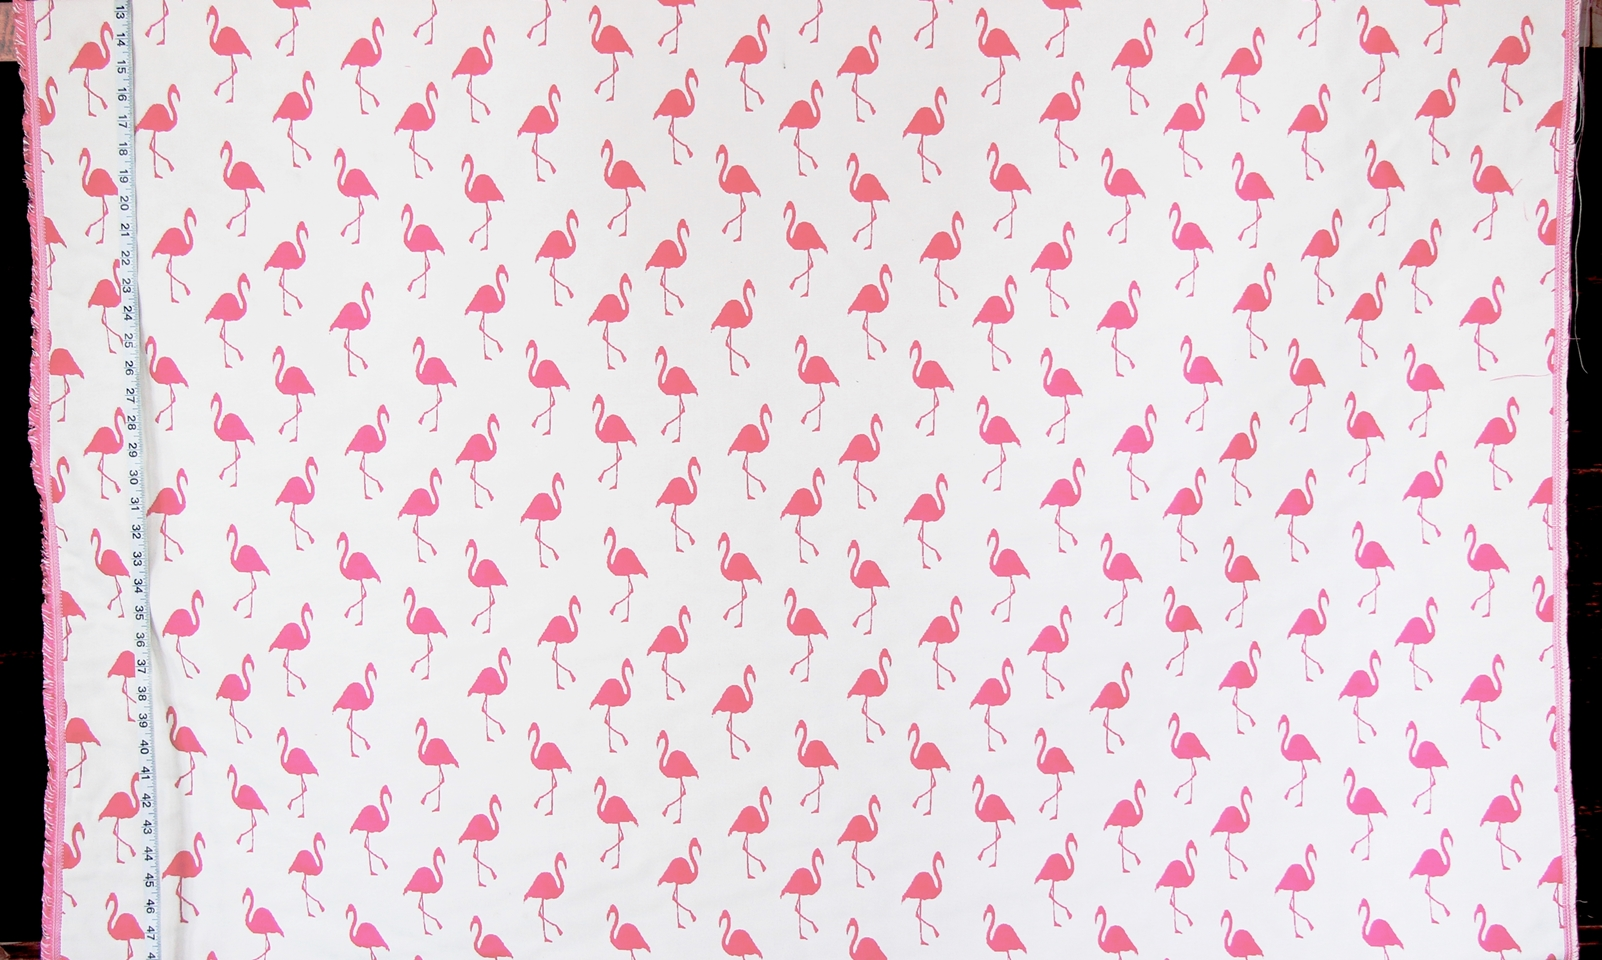 PINK AND WHITE REVERSIBLE FLAMINGO FABRIC